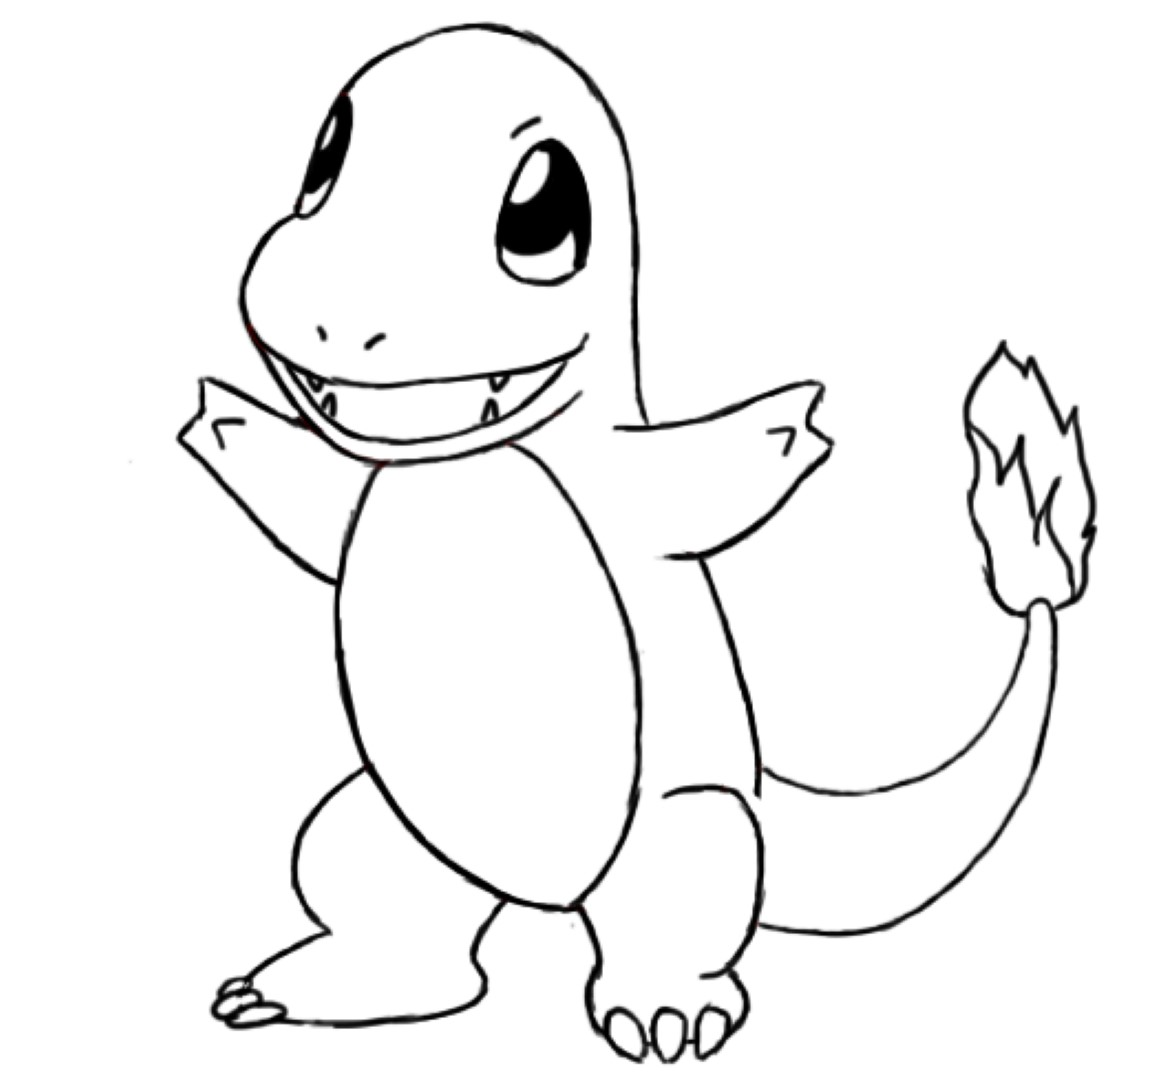 charmander colouring pages charmander coloring pages to download and print for free pages colouring charmander